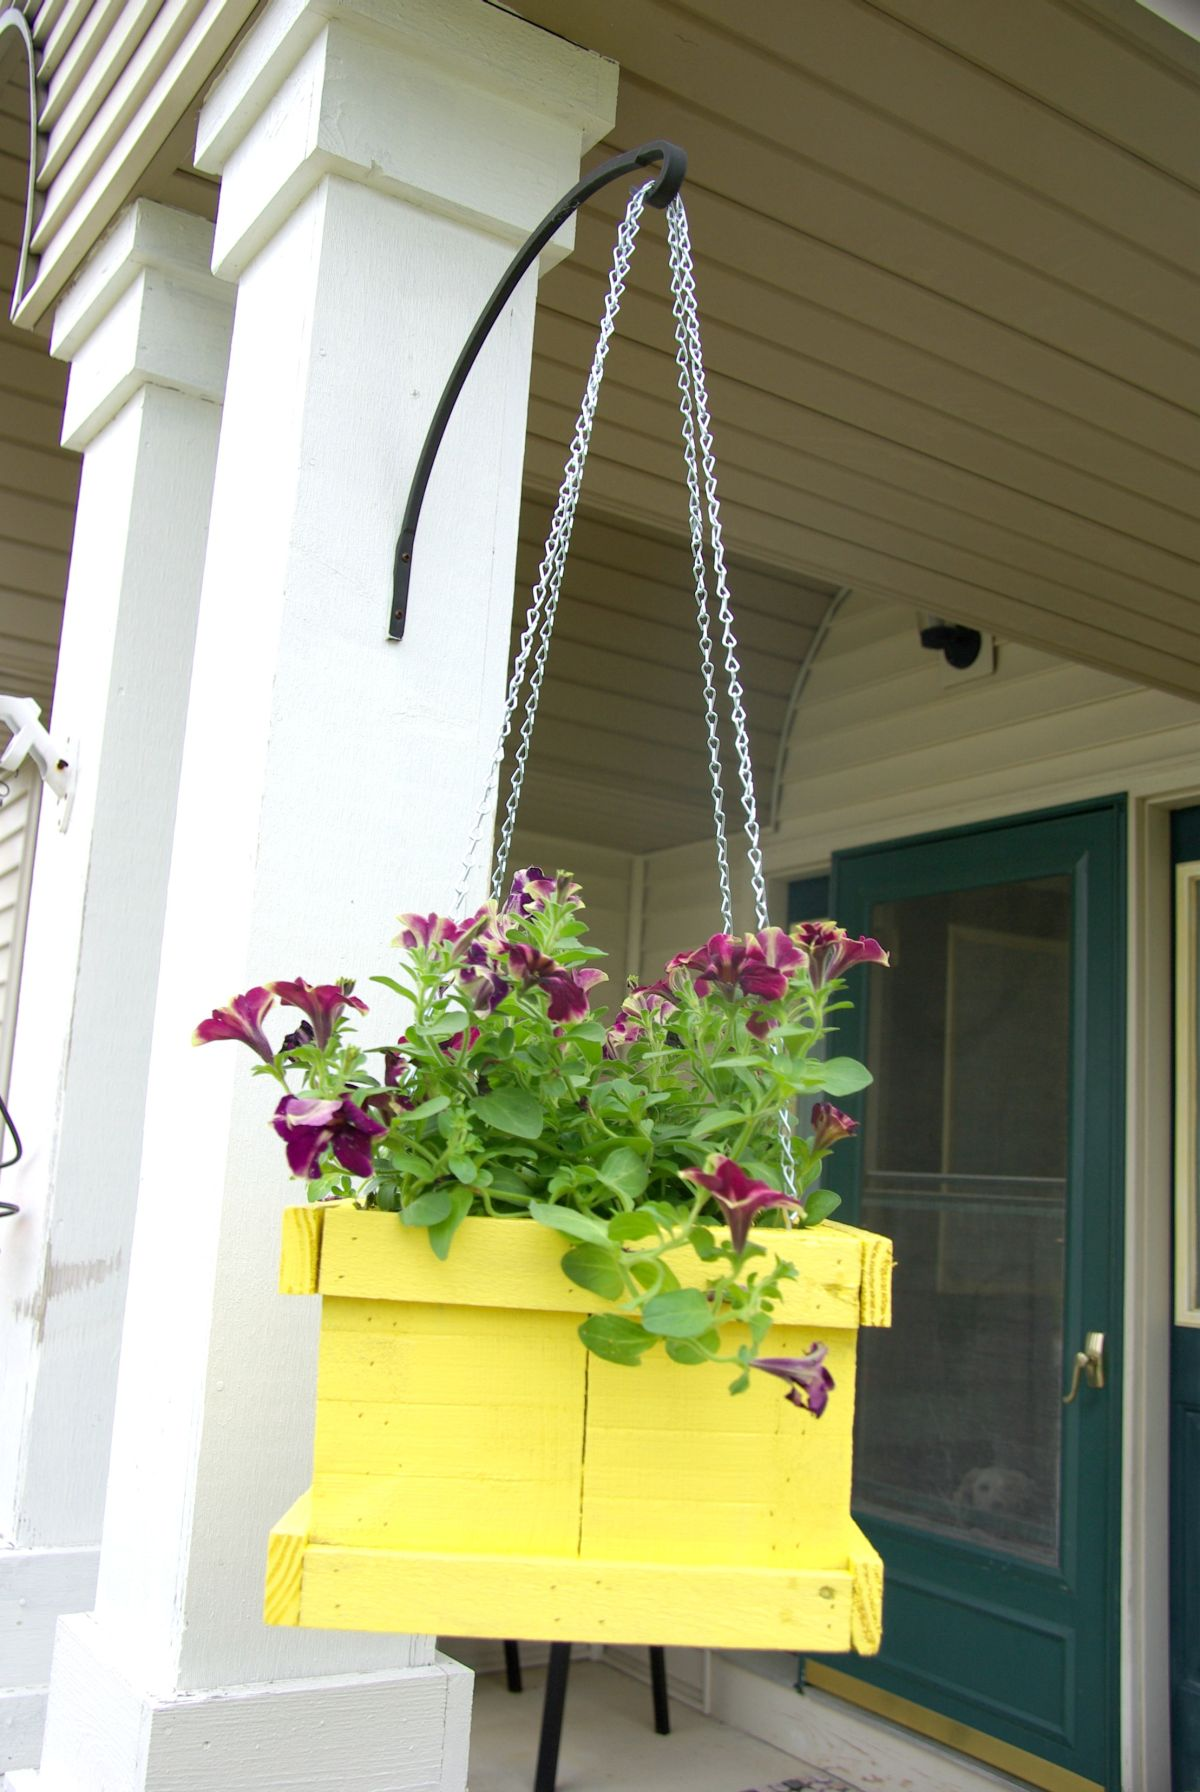 Add Some Hanging Planters to the Front Porch